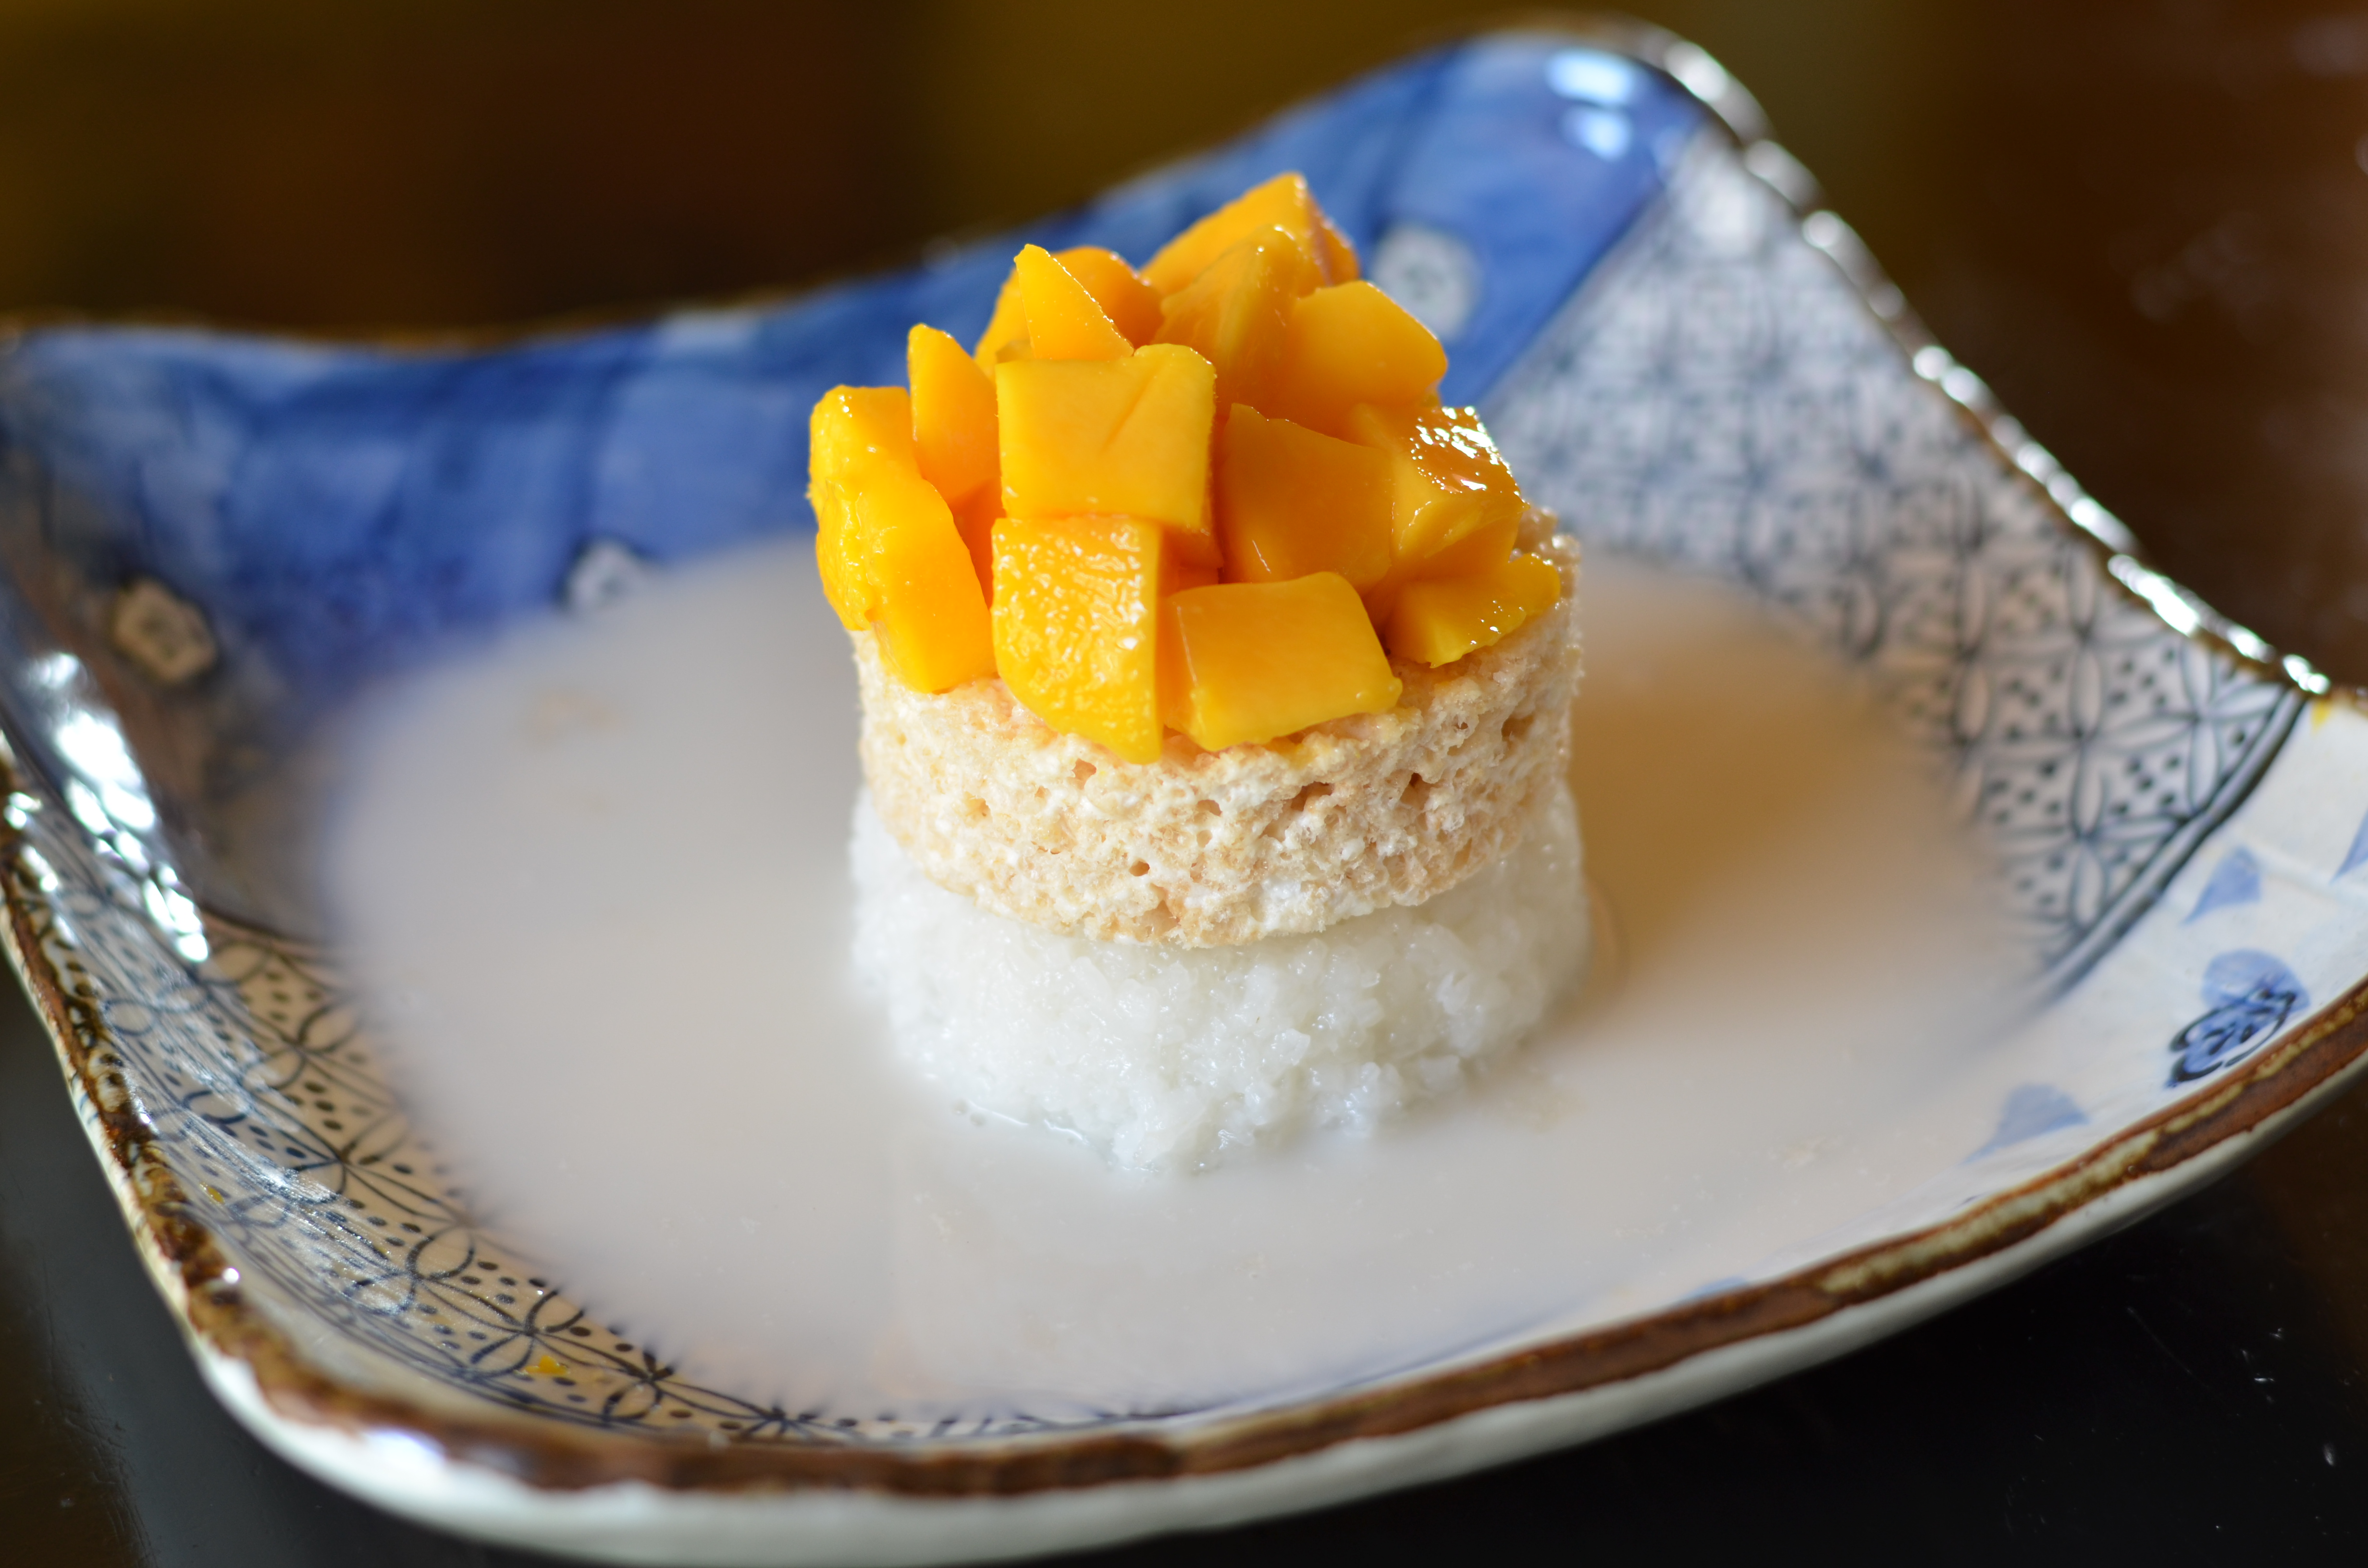 The Best Way To Eat This Is To Just Take Your Spoon And Cut Off A Part Of  The Side, Making Sure To Get All Four Parts: Rice, Crisped Rice, Mango,